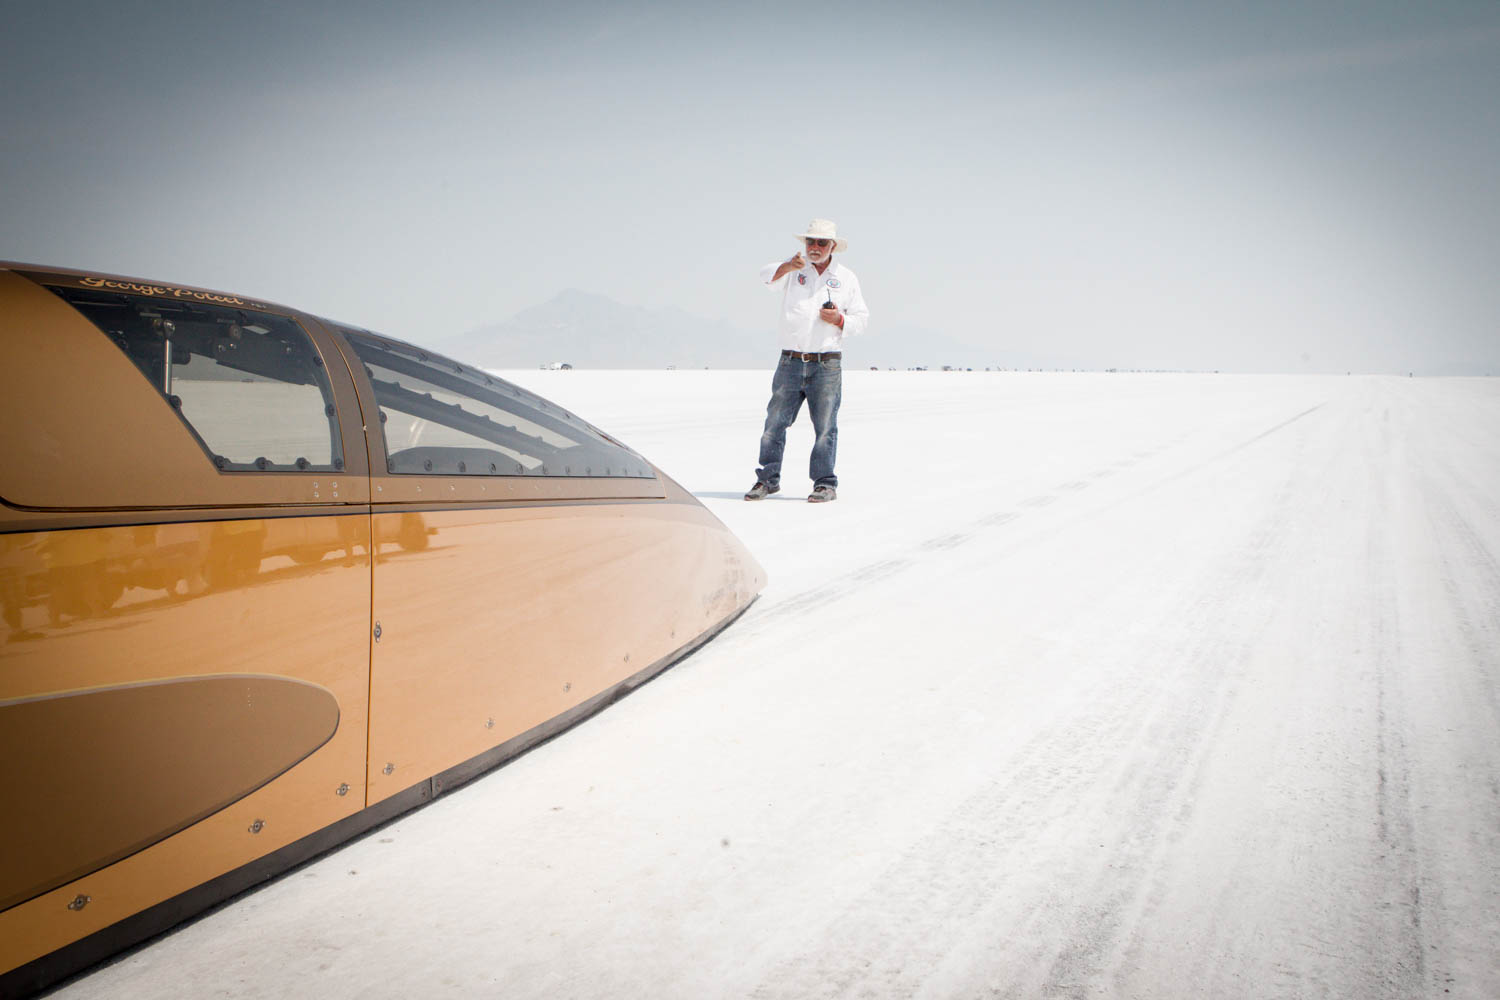 Once Poteet gets the go-ahead, there's nothing but nine miles of salt in front of him as he sets off down Bonneville's longest course.